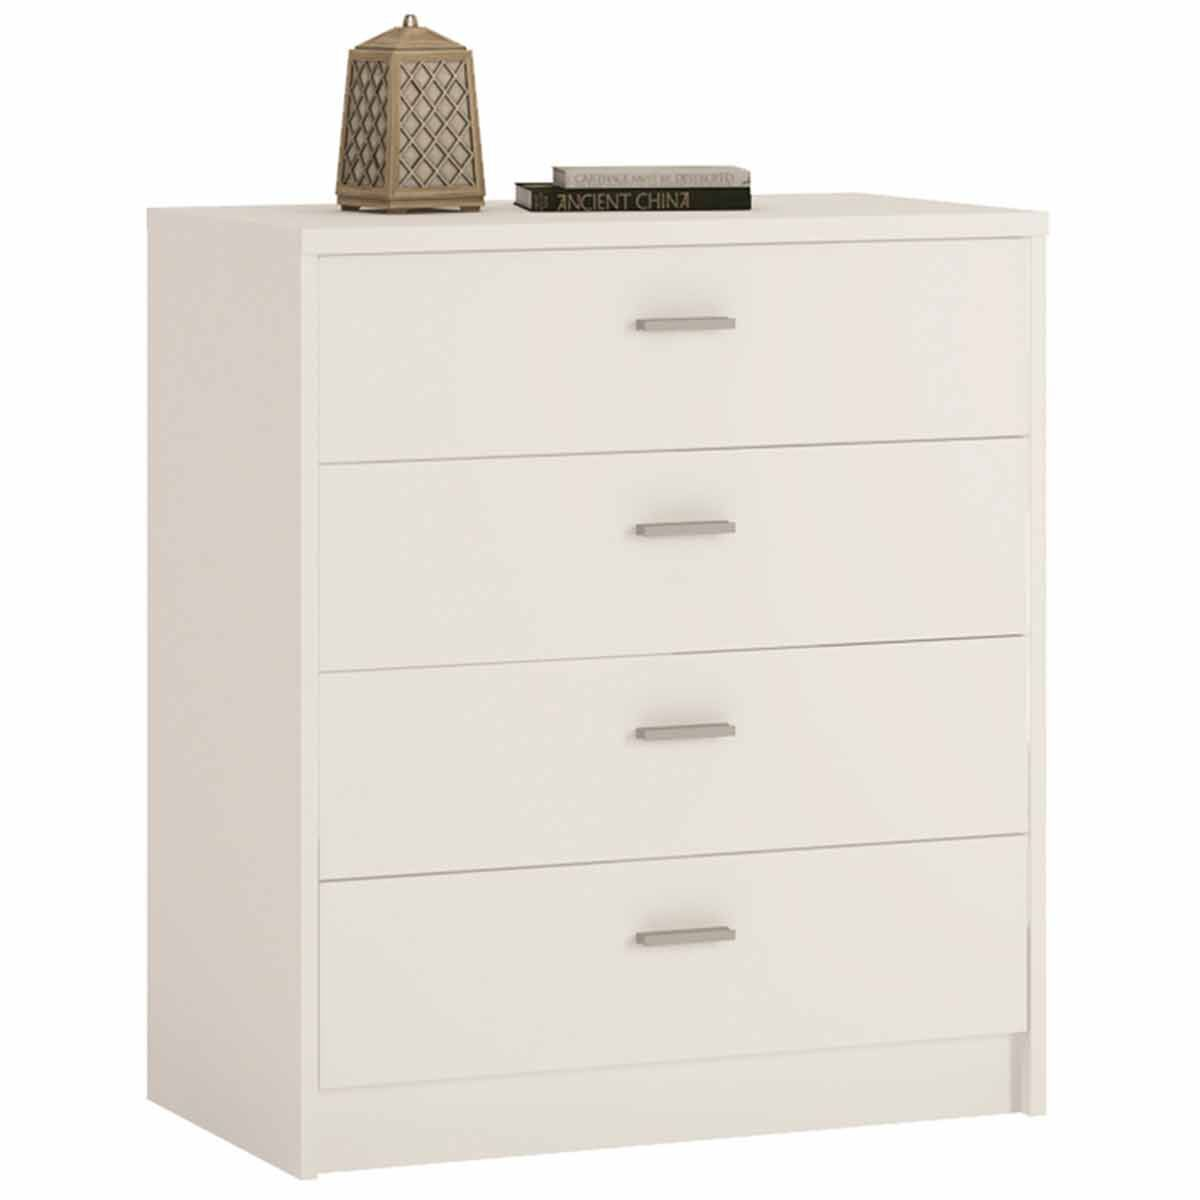 Belgravia 4 Drawer Chest of Drawers Pearl White